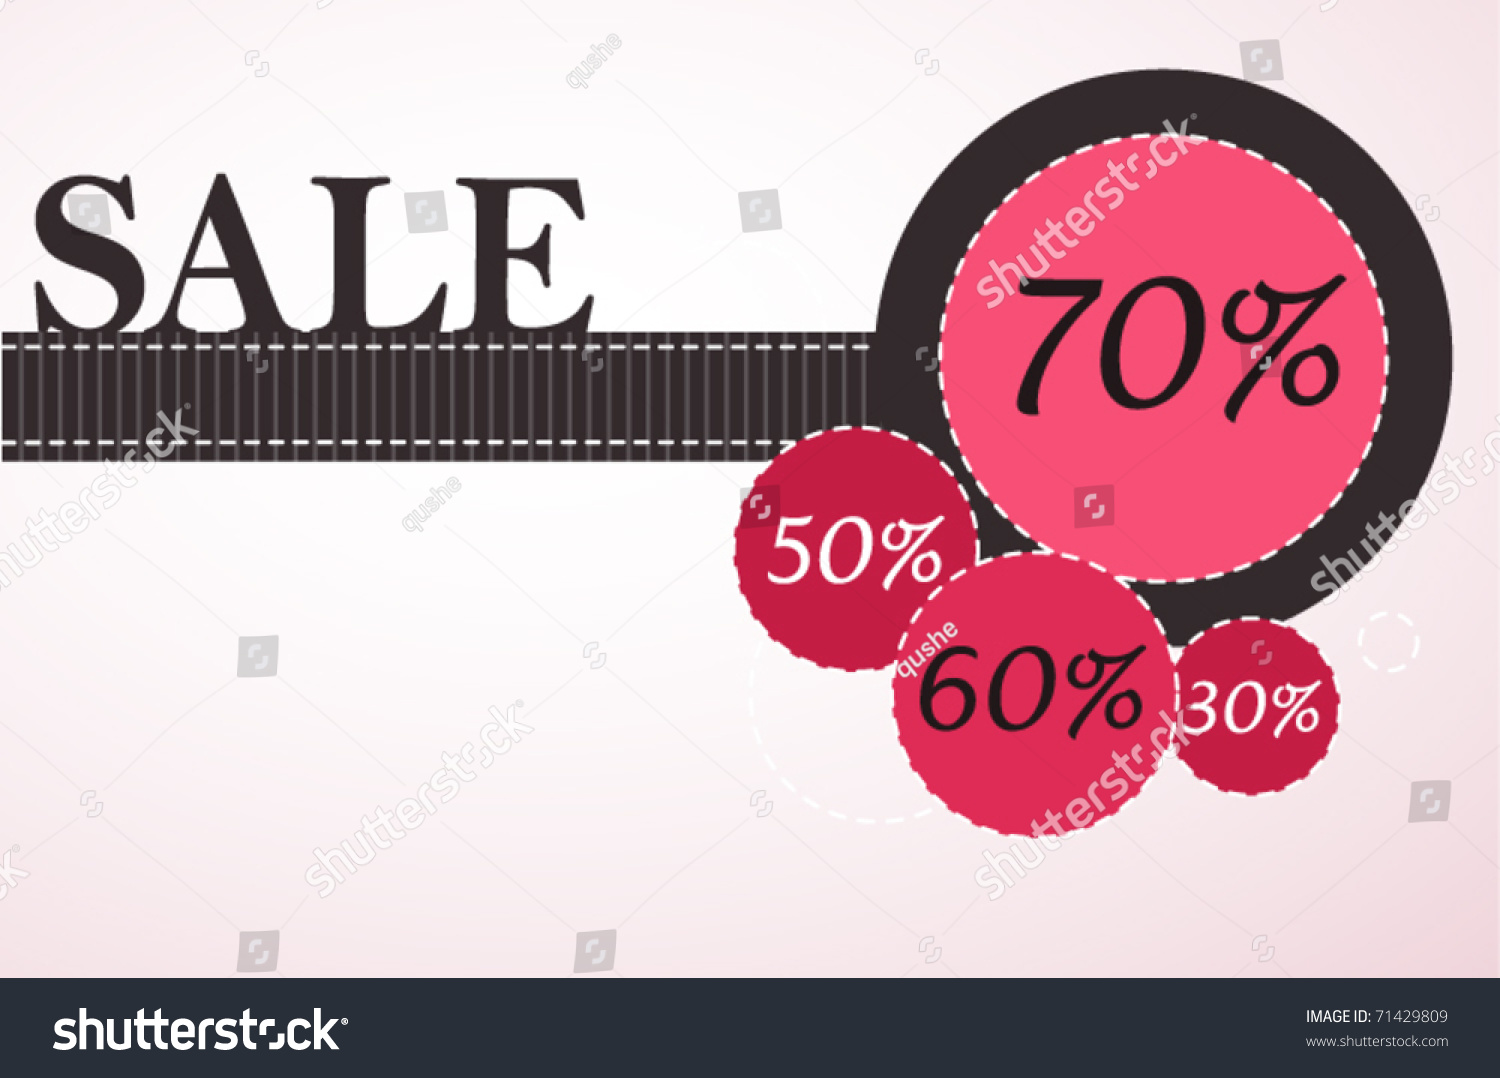 Poster design elements - Sale Poster Design Elements Vector Illustration